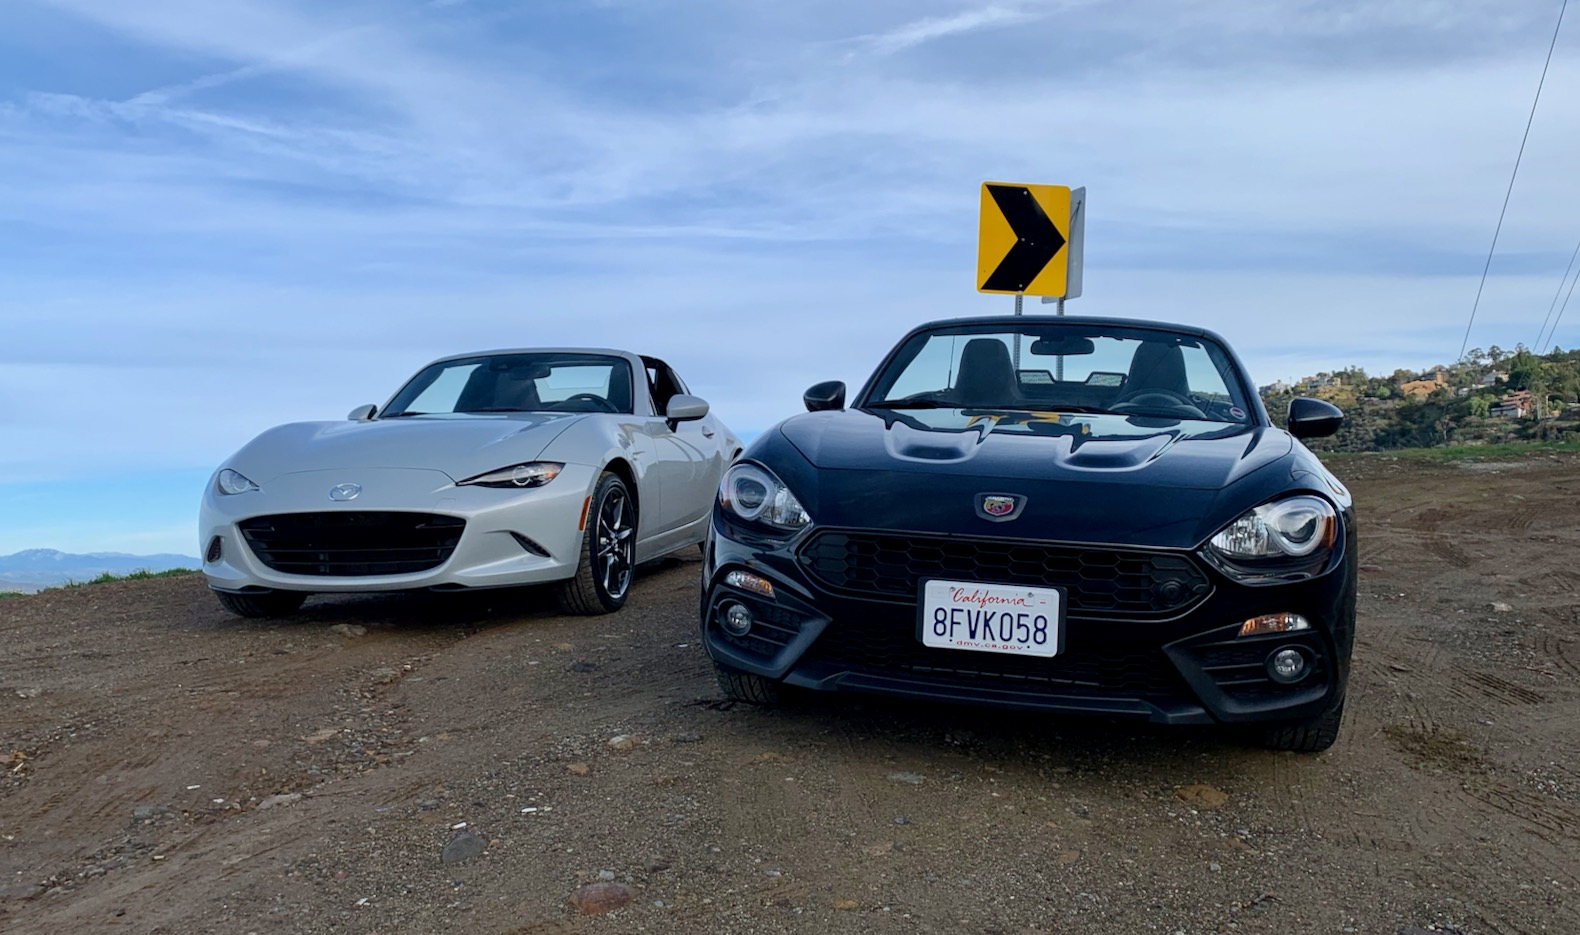 2019 Mazda Mx 5 Miata Vs 2018 Fiat 124 Spider Abarth Battle Of The Roadsters